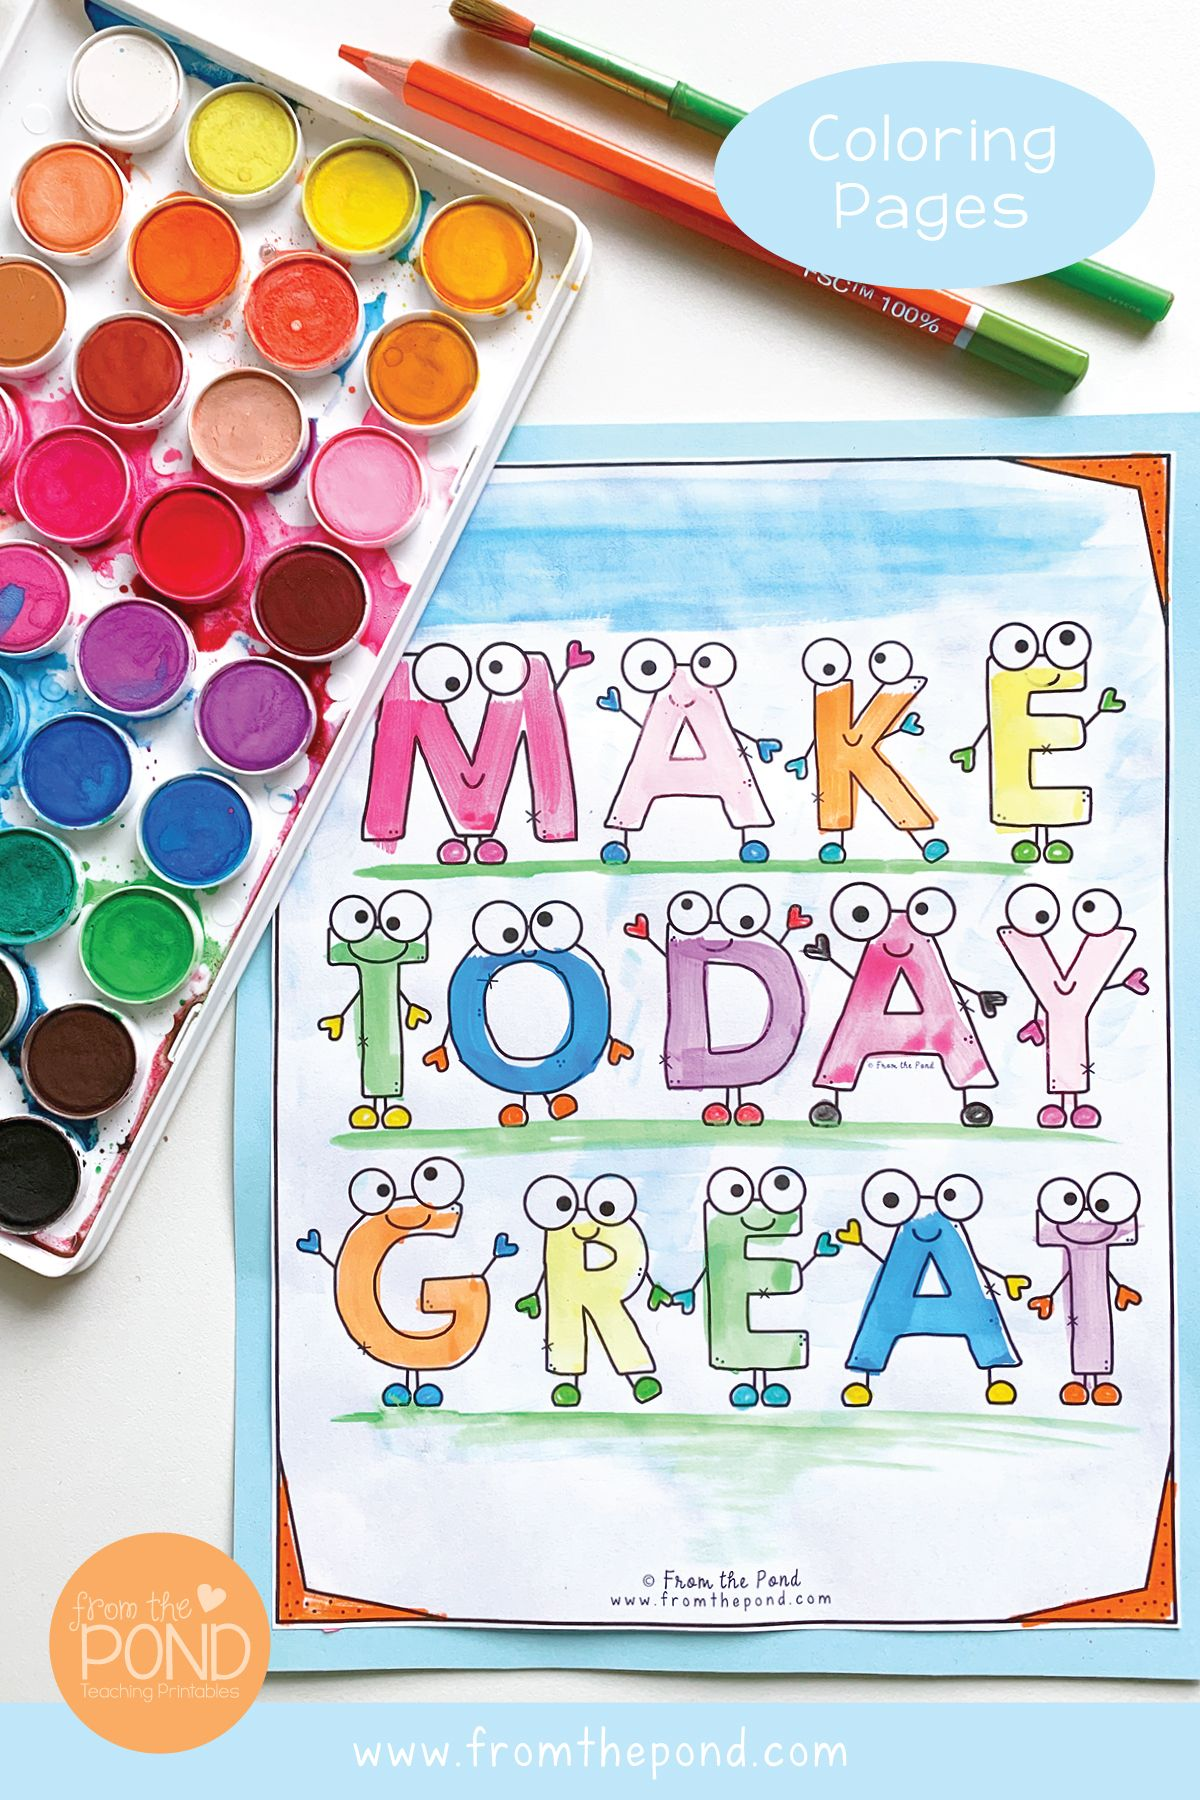 Make Today Great Coloring Page In 2021 Free Coloring Pages Classroom Art Projects Kids Art Projects [ 1800 x 1200 Pixel ]